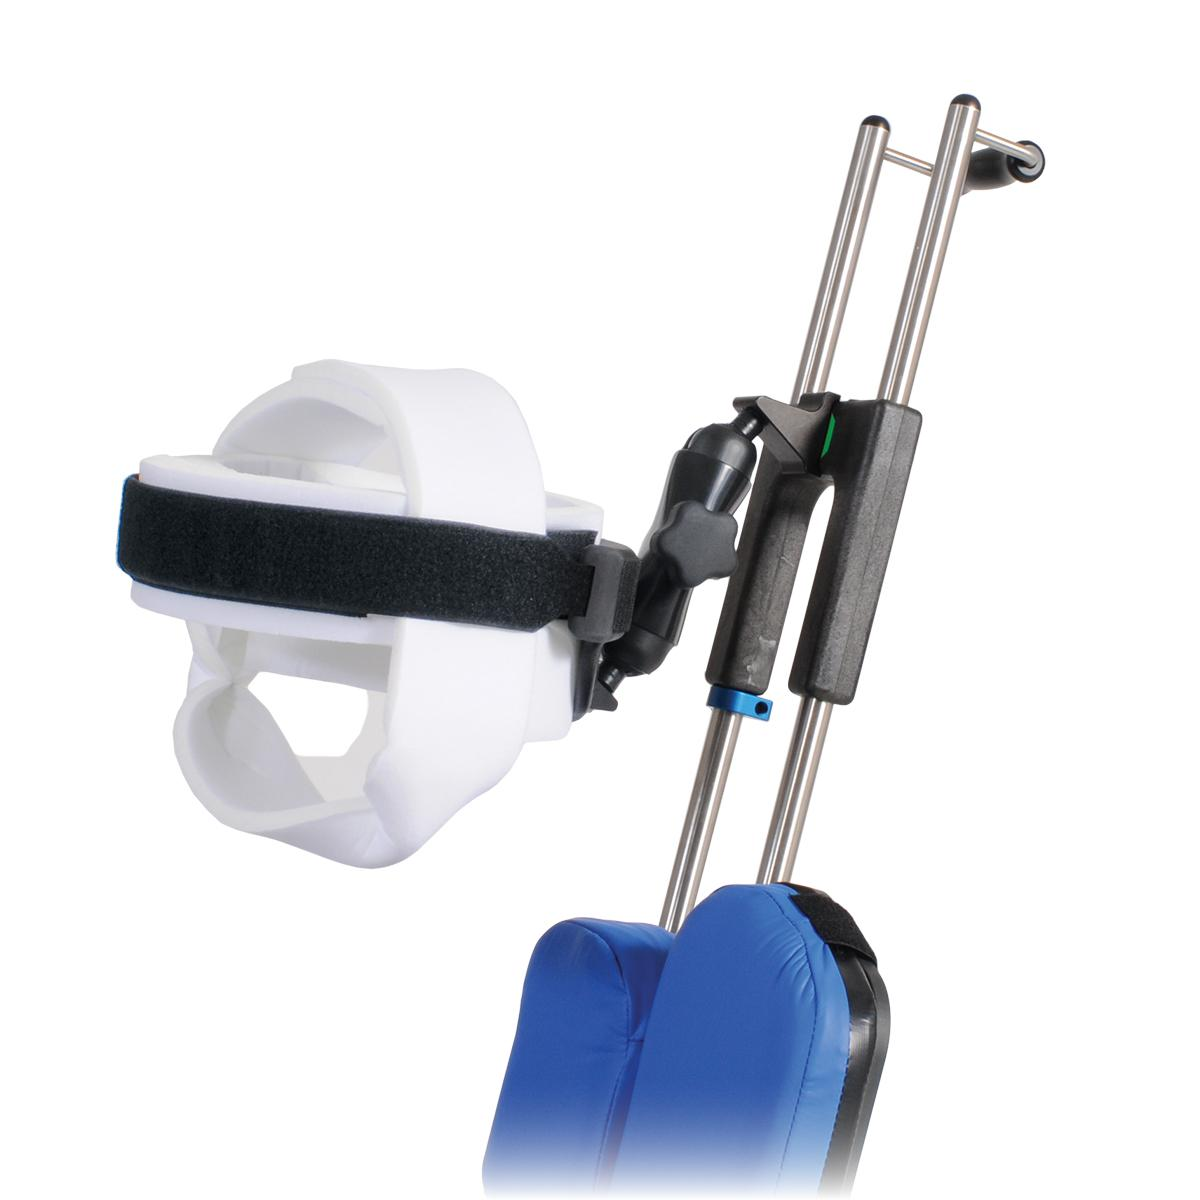 Universal Head Positioner side view with Universal Head Restraint Disposable